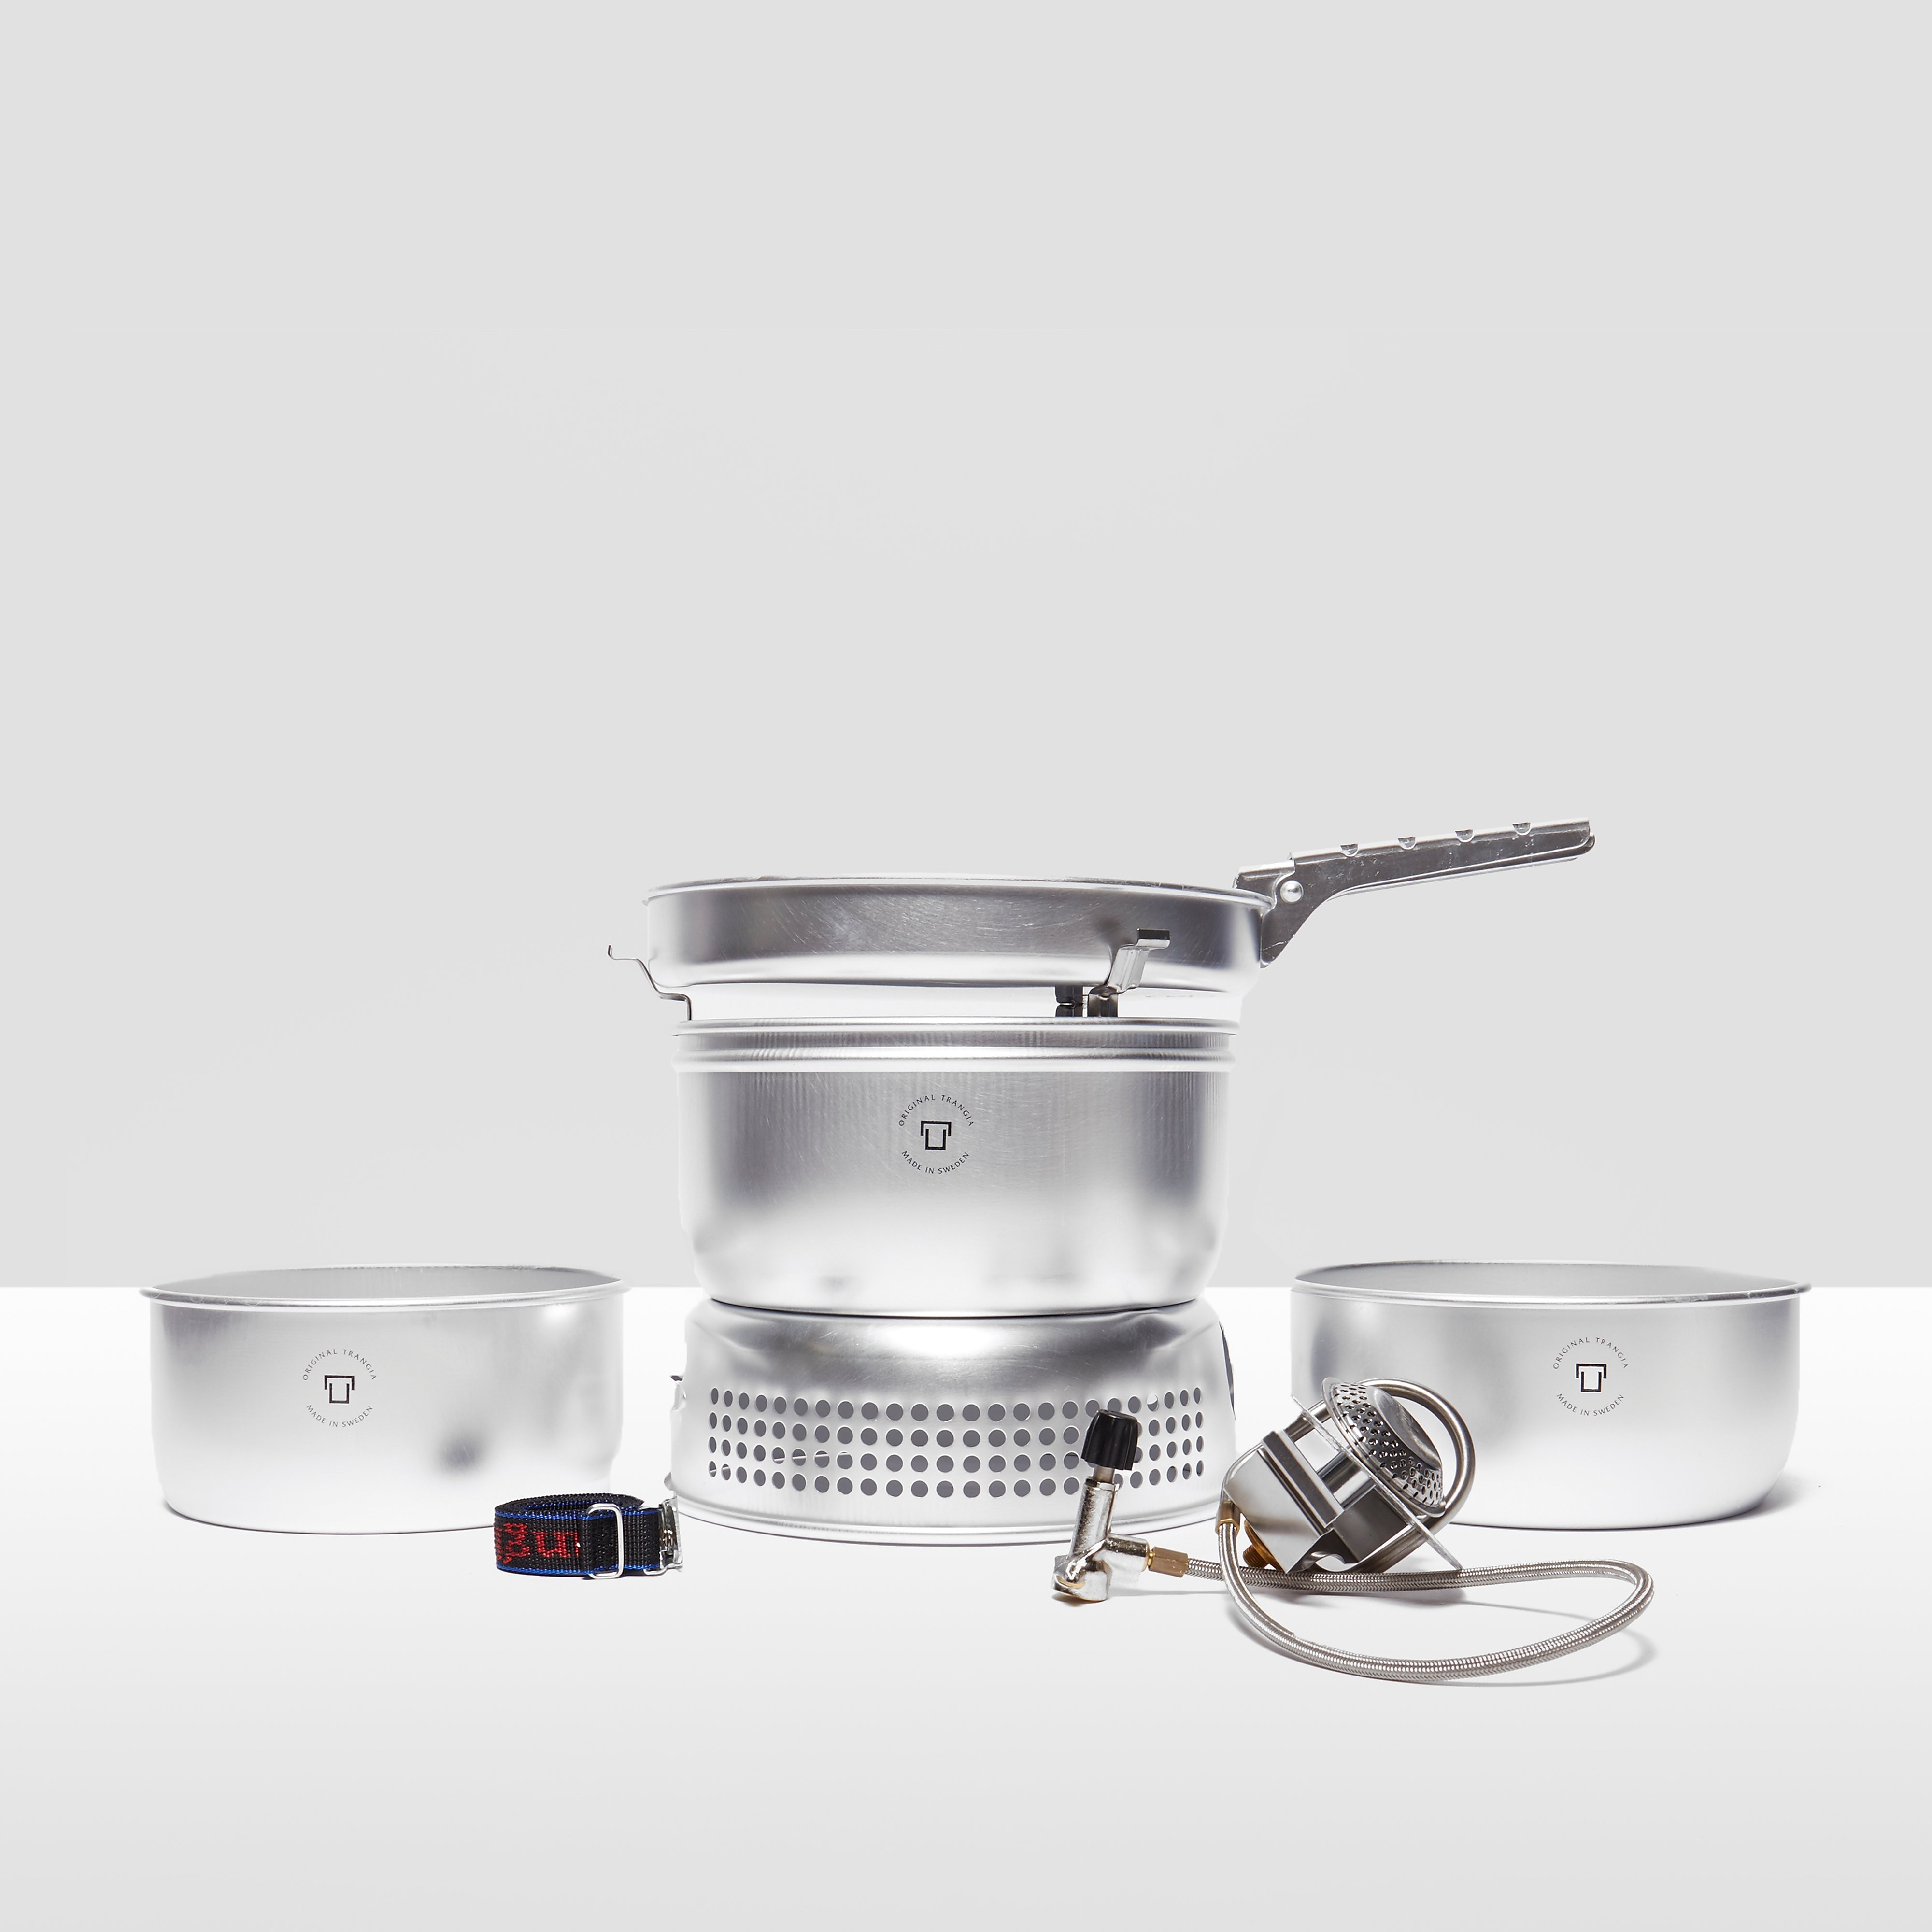 TRANGIA 25-1 Cooking System